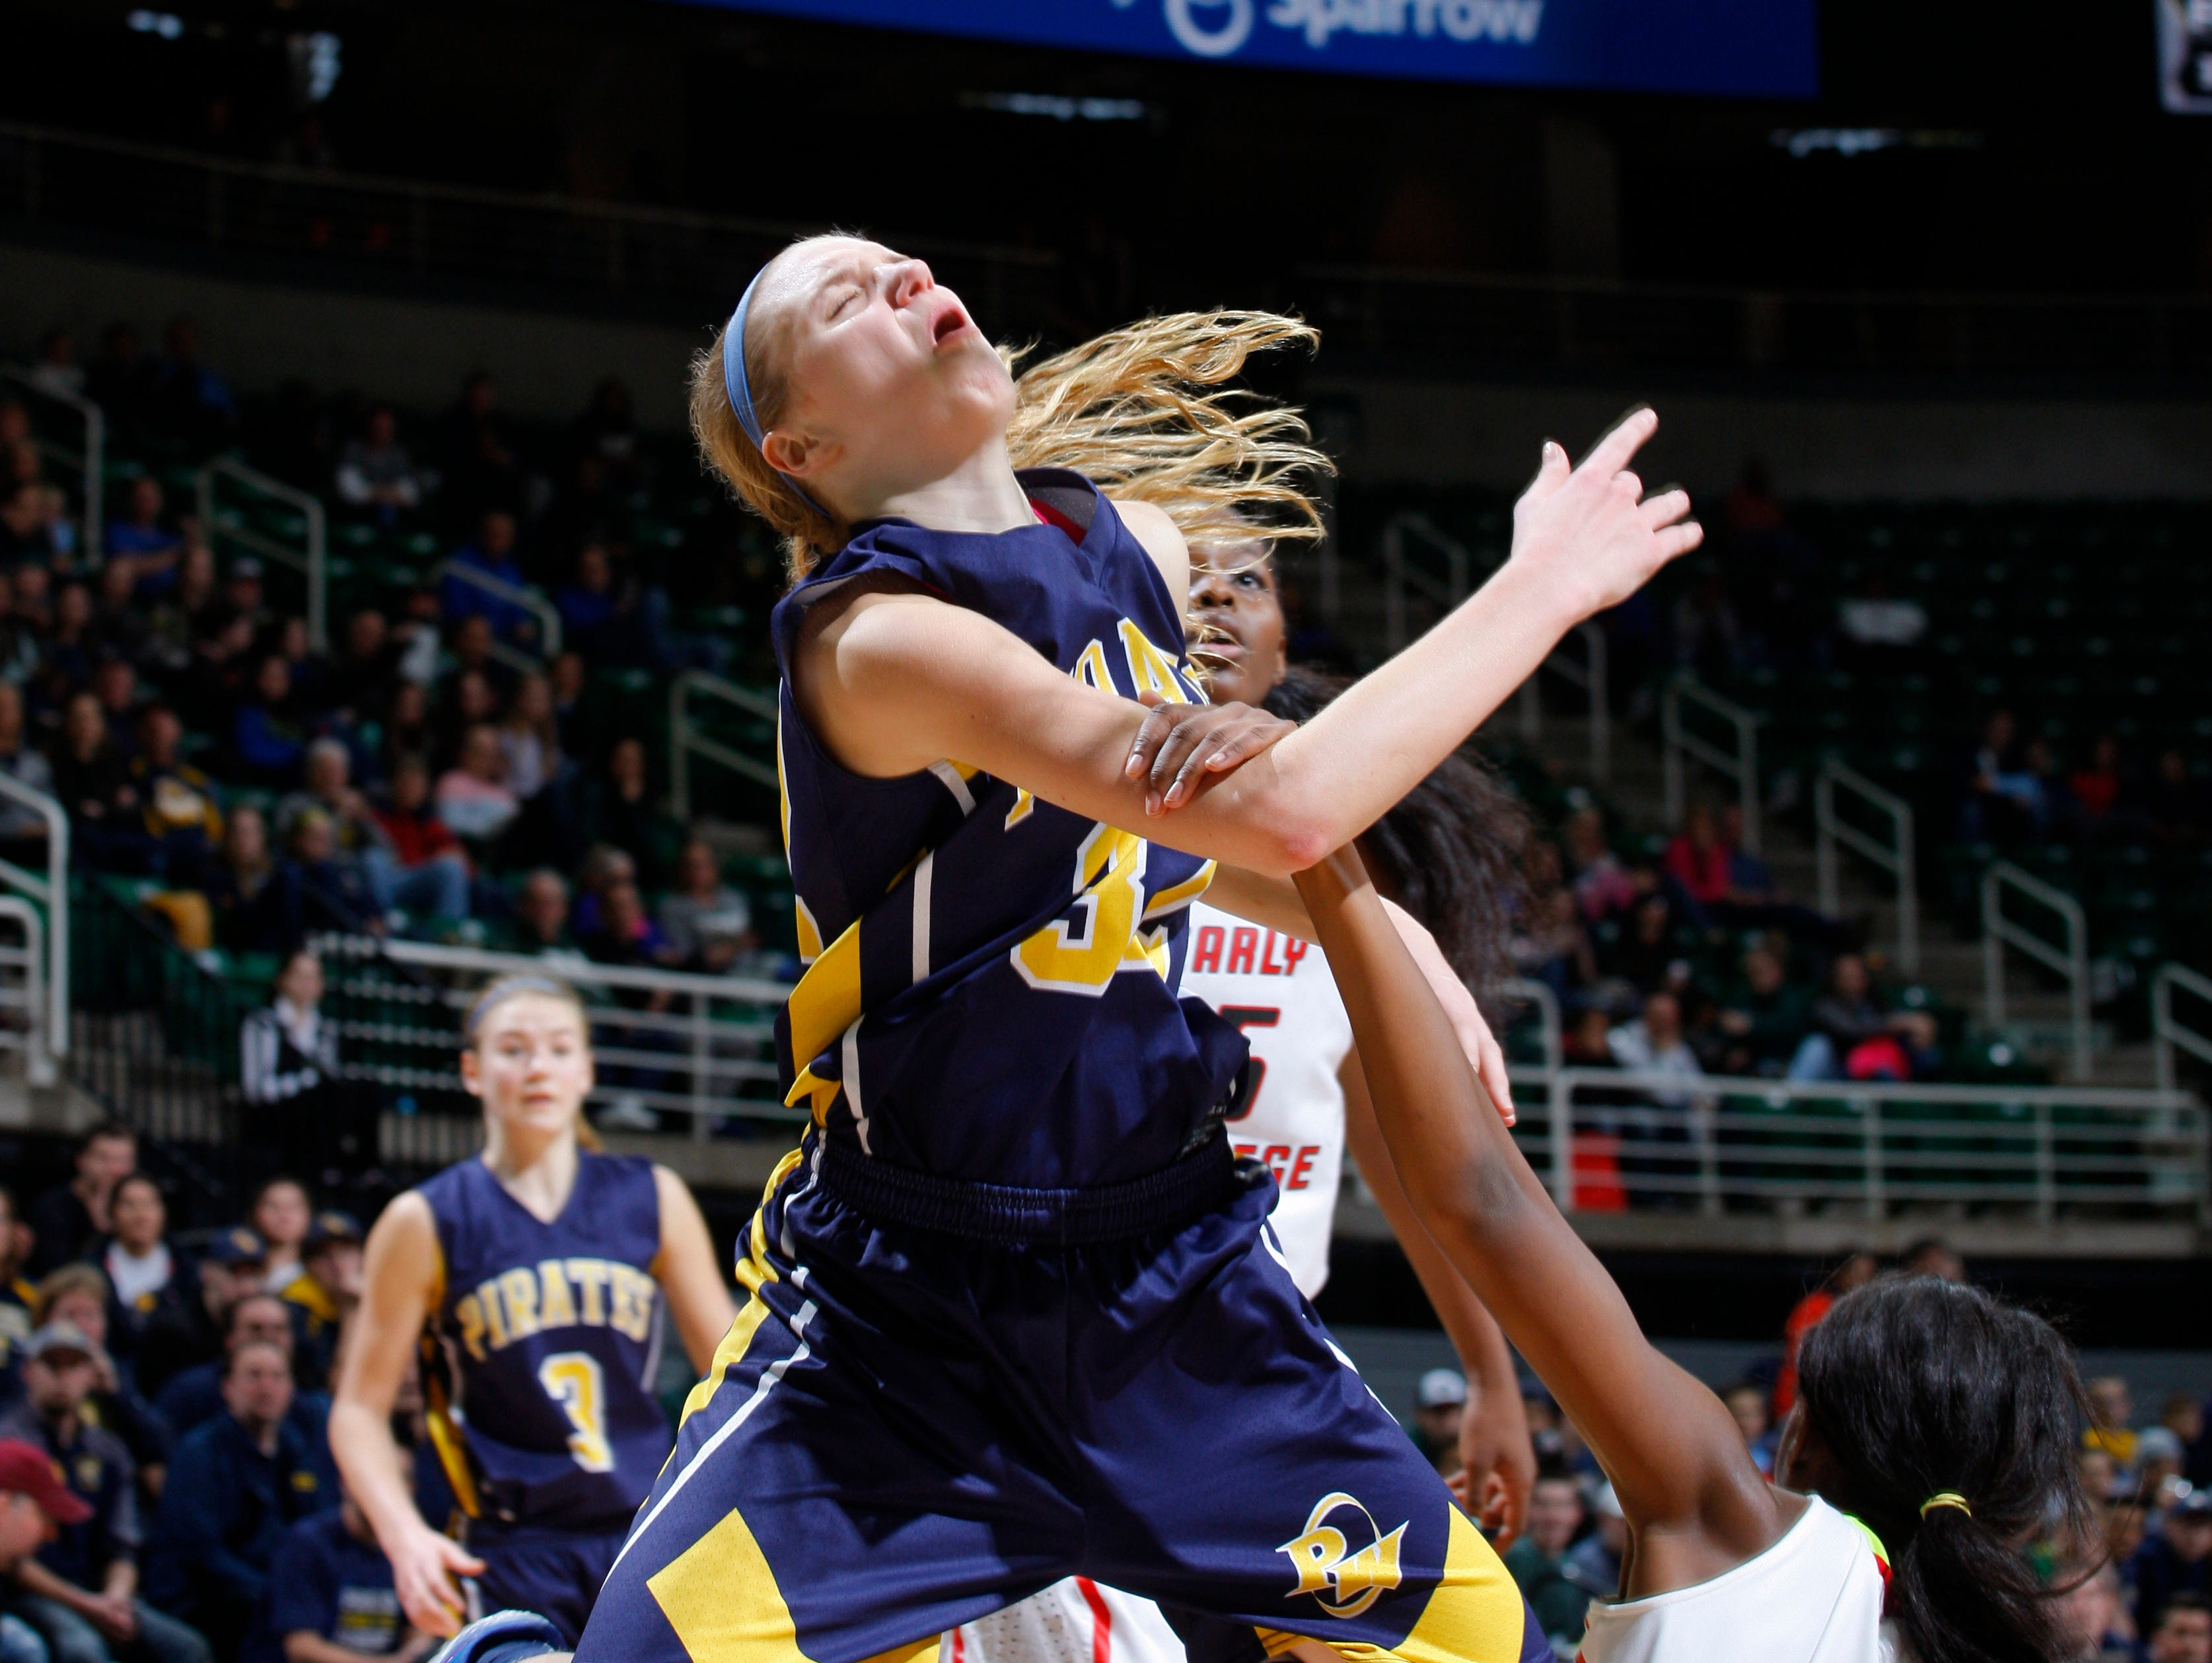 Pewamo-Westphalia's Emily Spitzley is hacked by Detroit Edison's Ariel Jenkins (4) during their MHSAA Class C championship game, Saturday, March 18, 2017, in East Lansing, Mich. P-W fell 46-44.